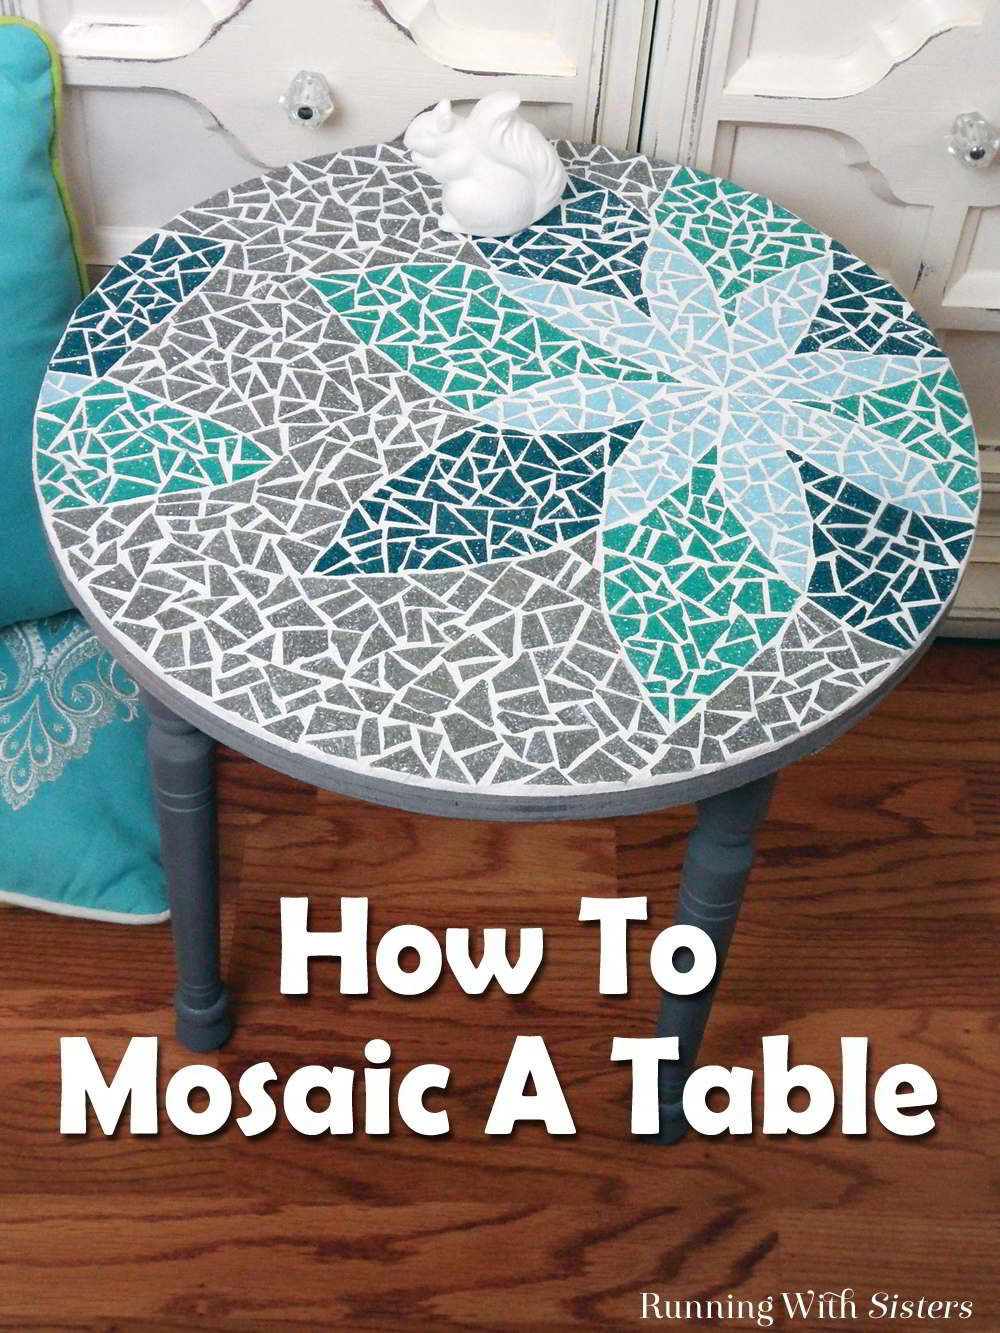 How To Mosaic A Table Running With Sisters Mosaic Furniture